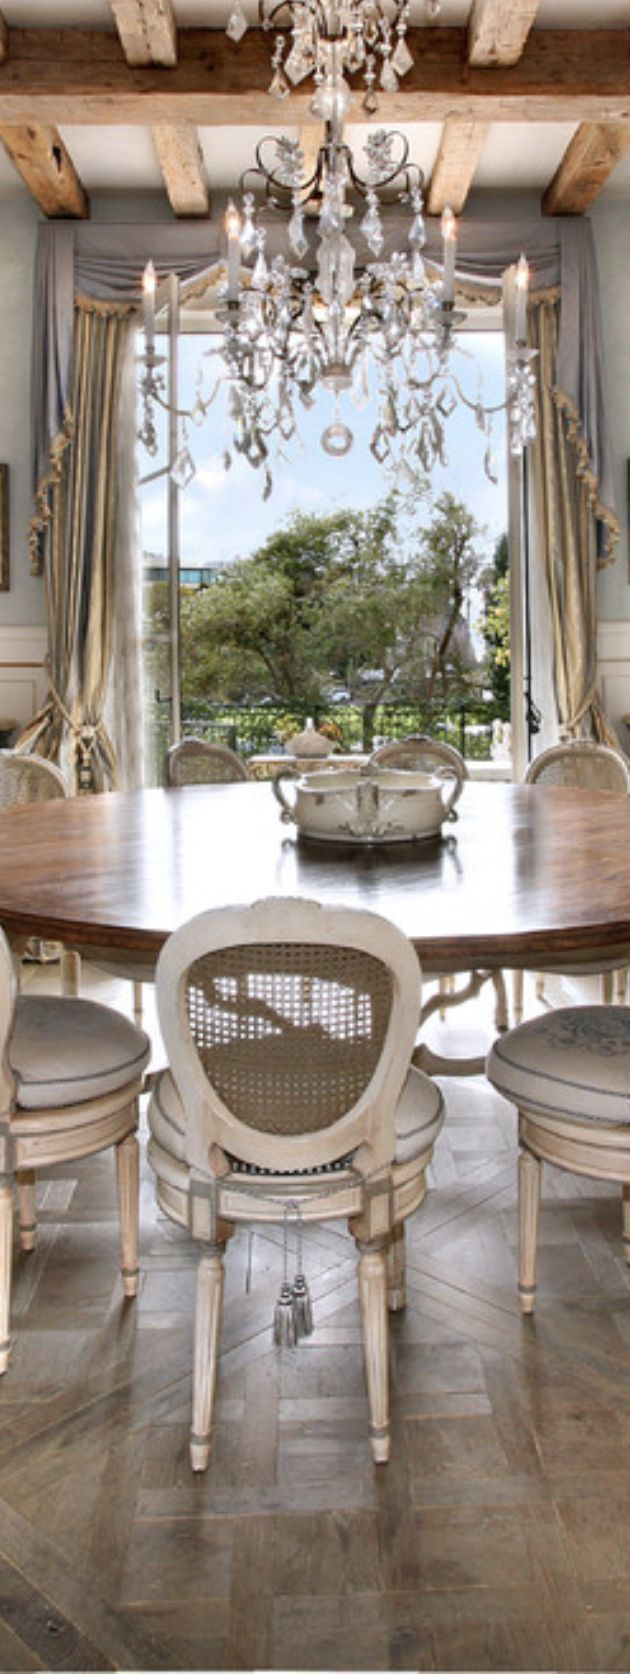 268 best dining tables and chairs images on pinterest dining 25 exquisite corner breakfast nook ideas in various styles